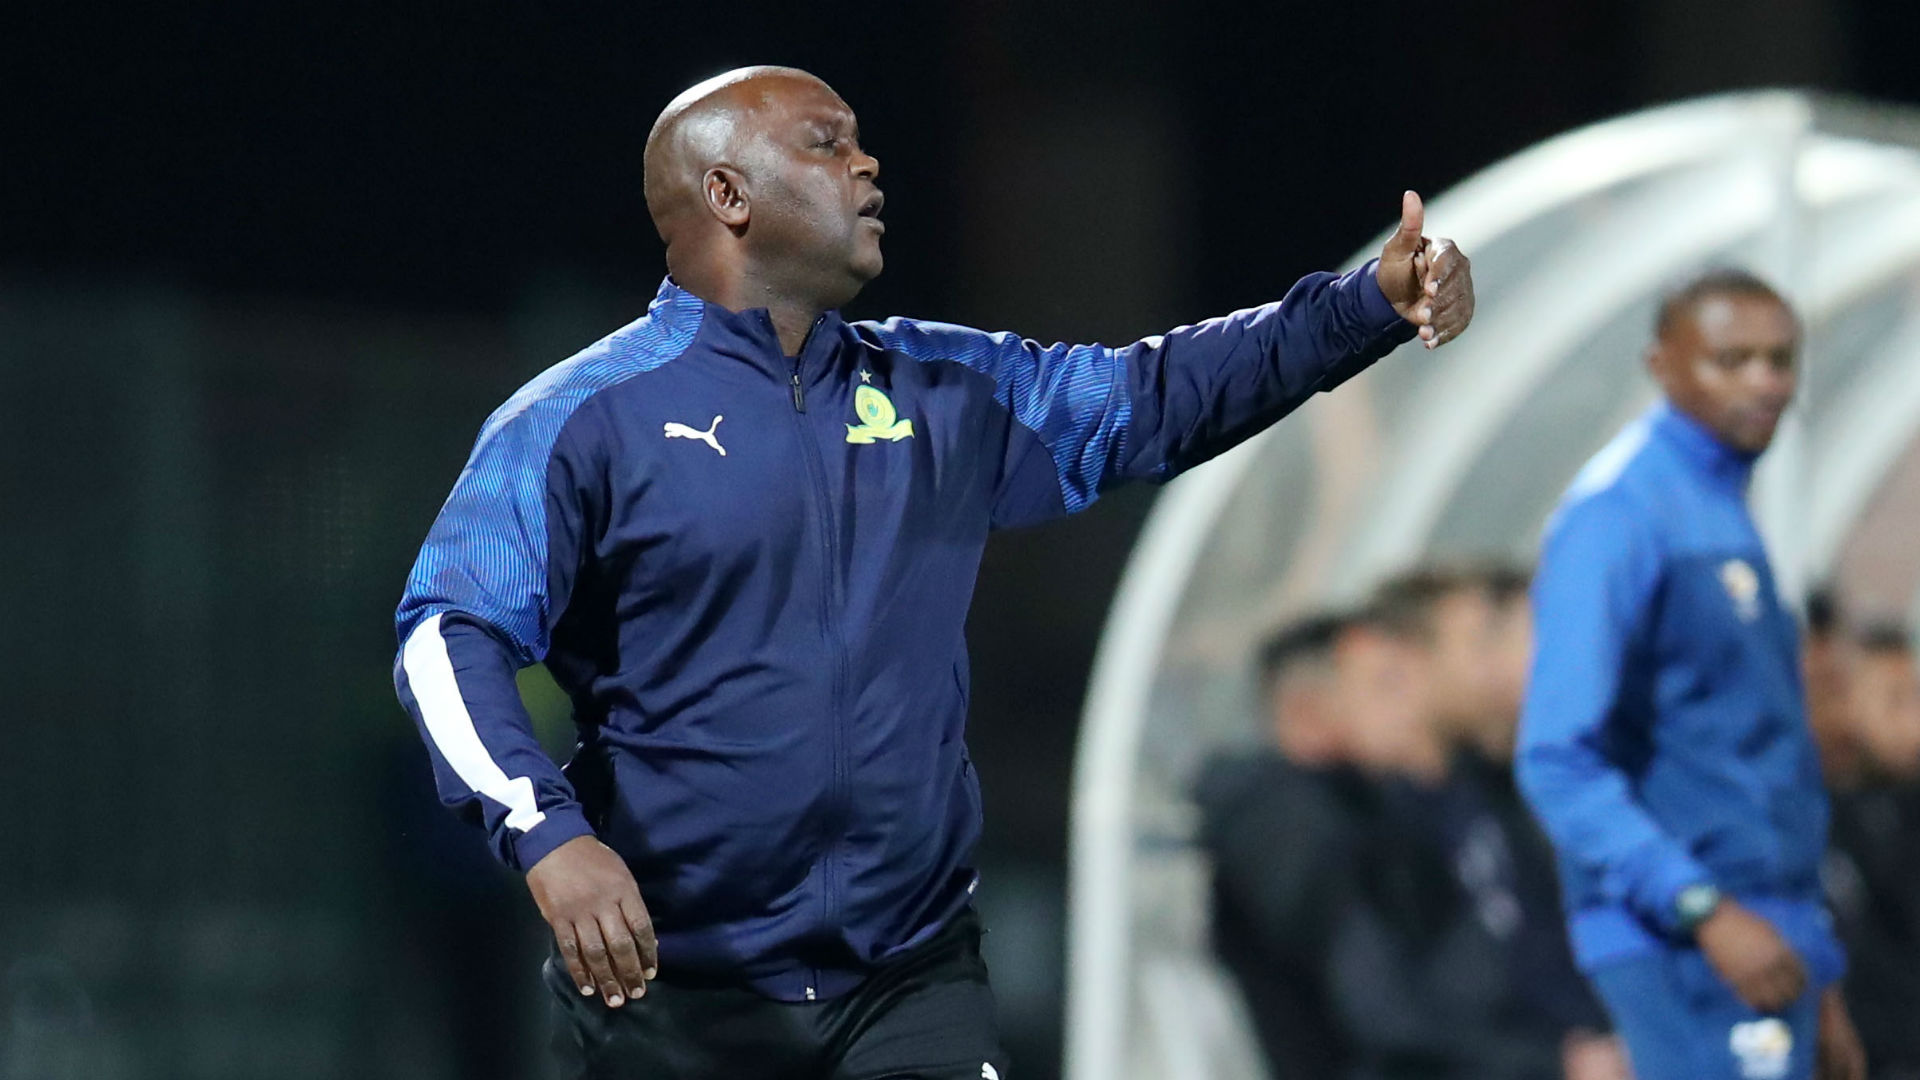 Mamelodi Sundowns didn't have the right intensity against Petro Atletico - Mosimane